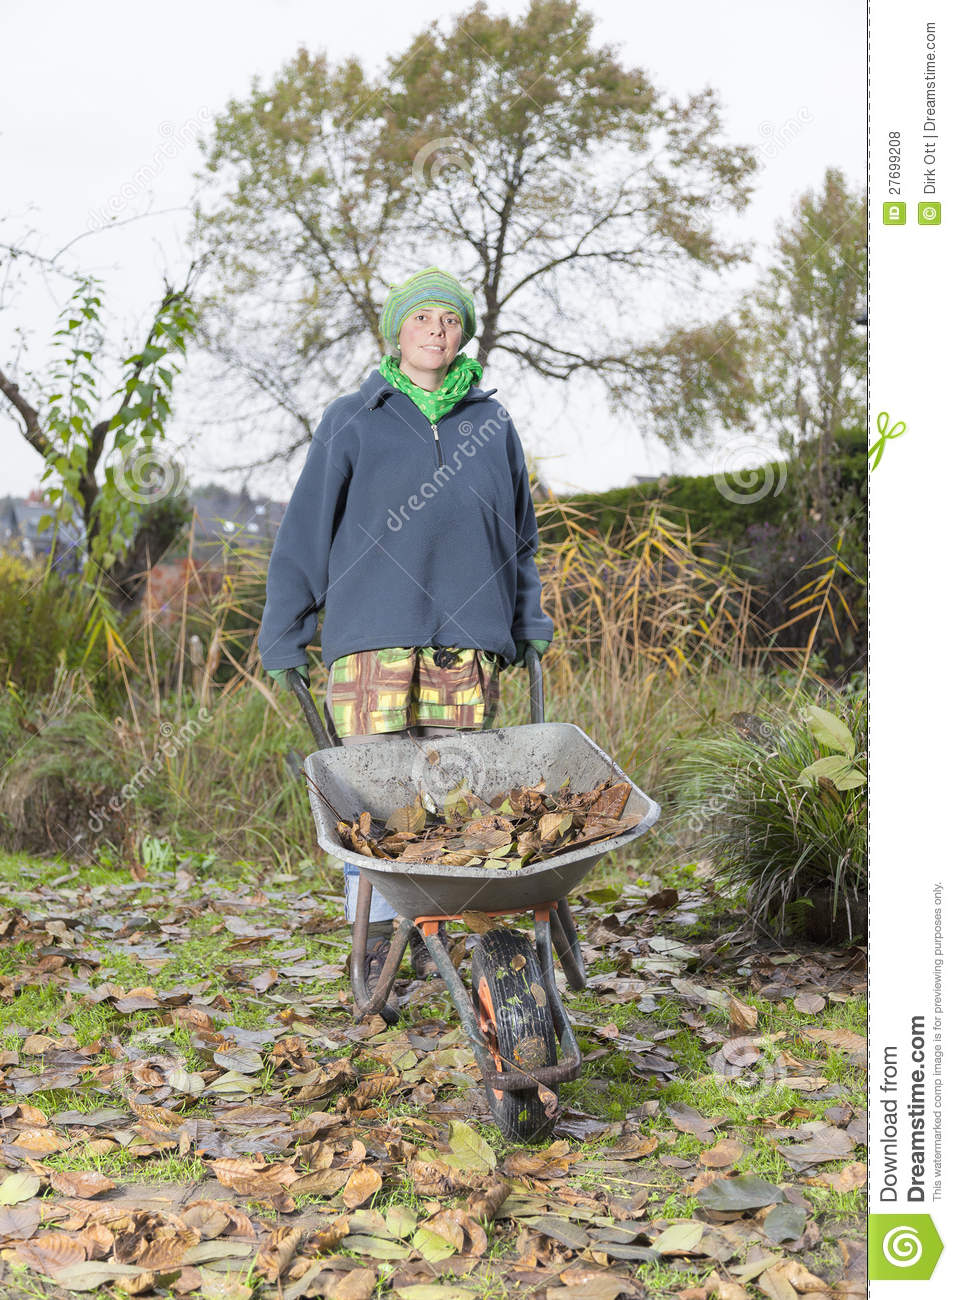 Garden Work Royalty Free Stock Photos Image 27699208